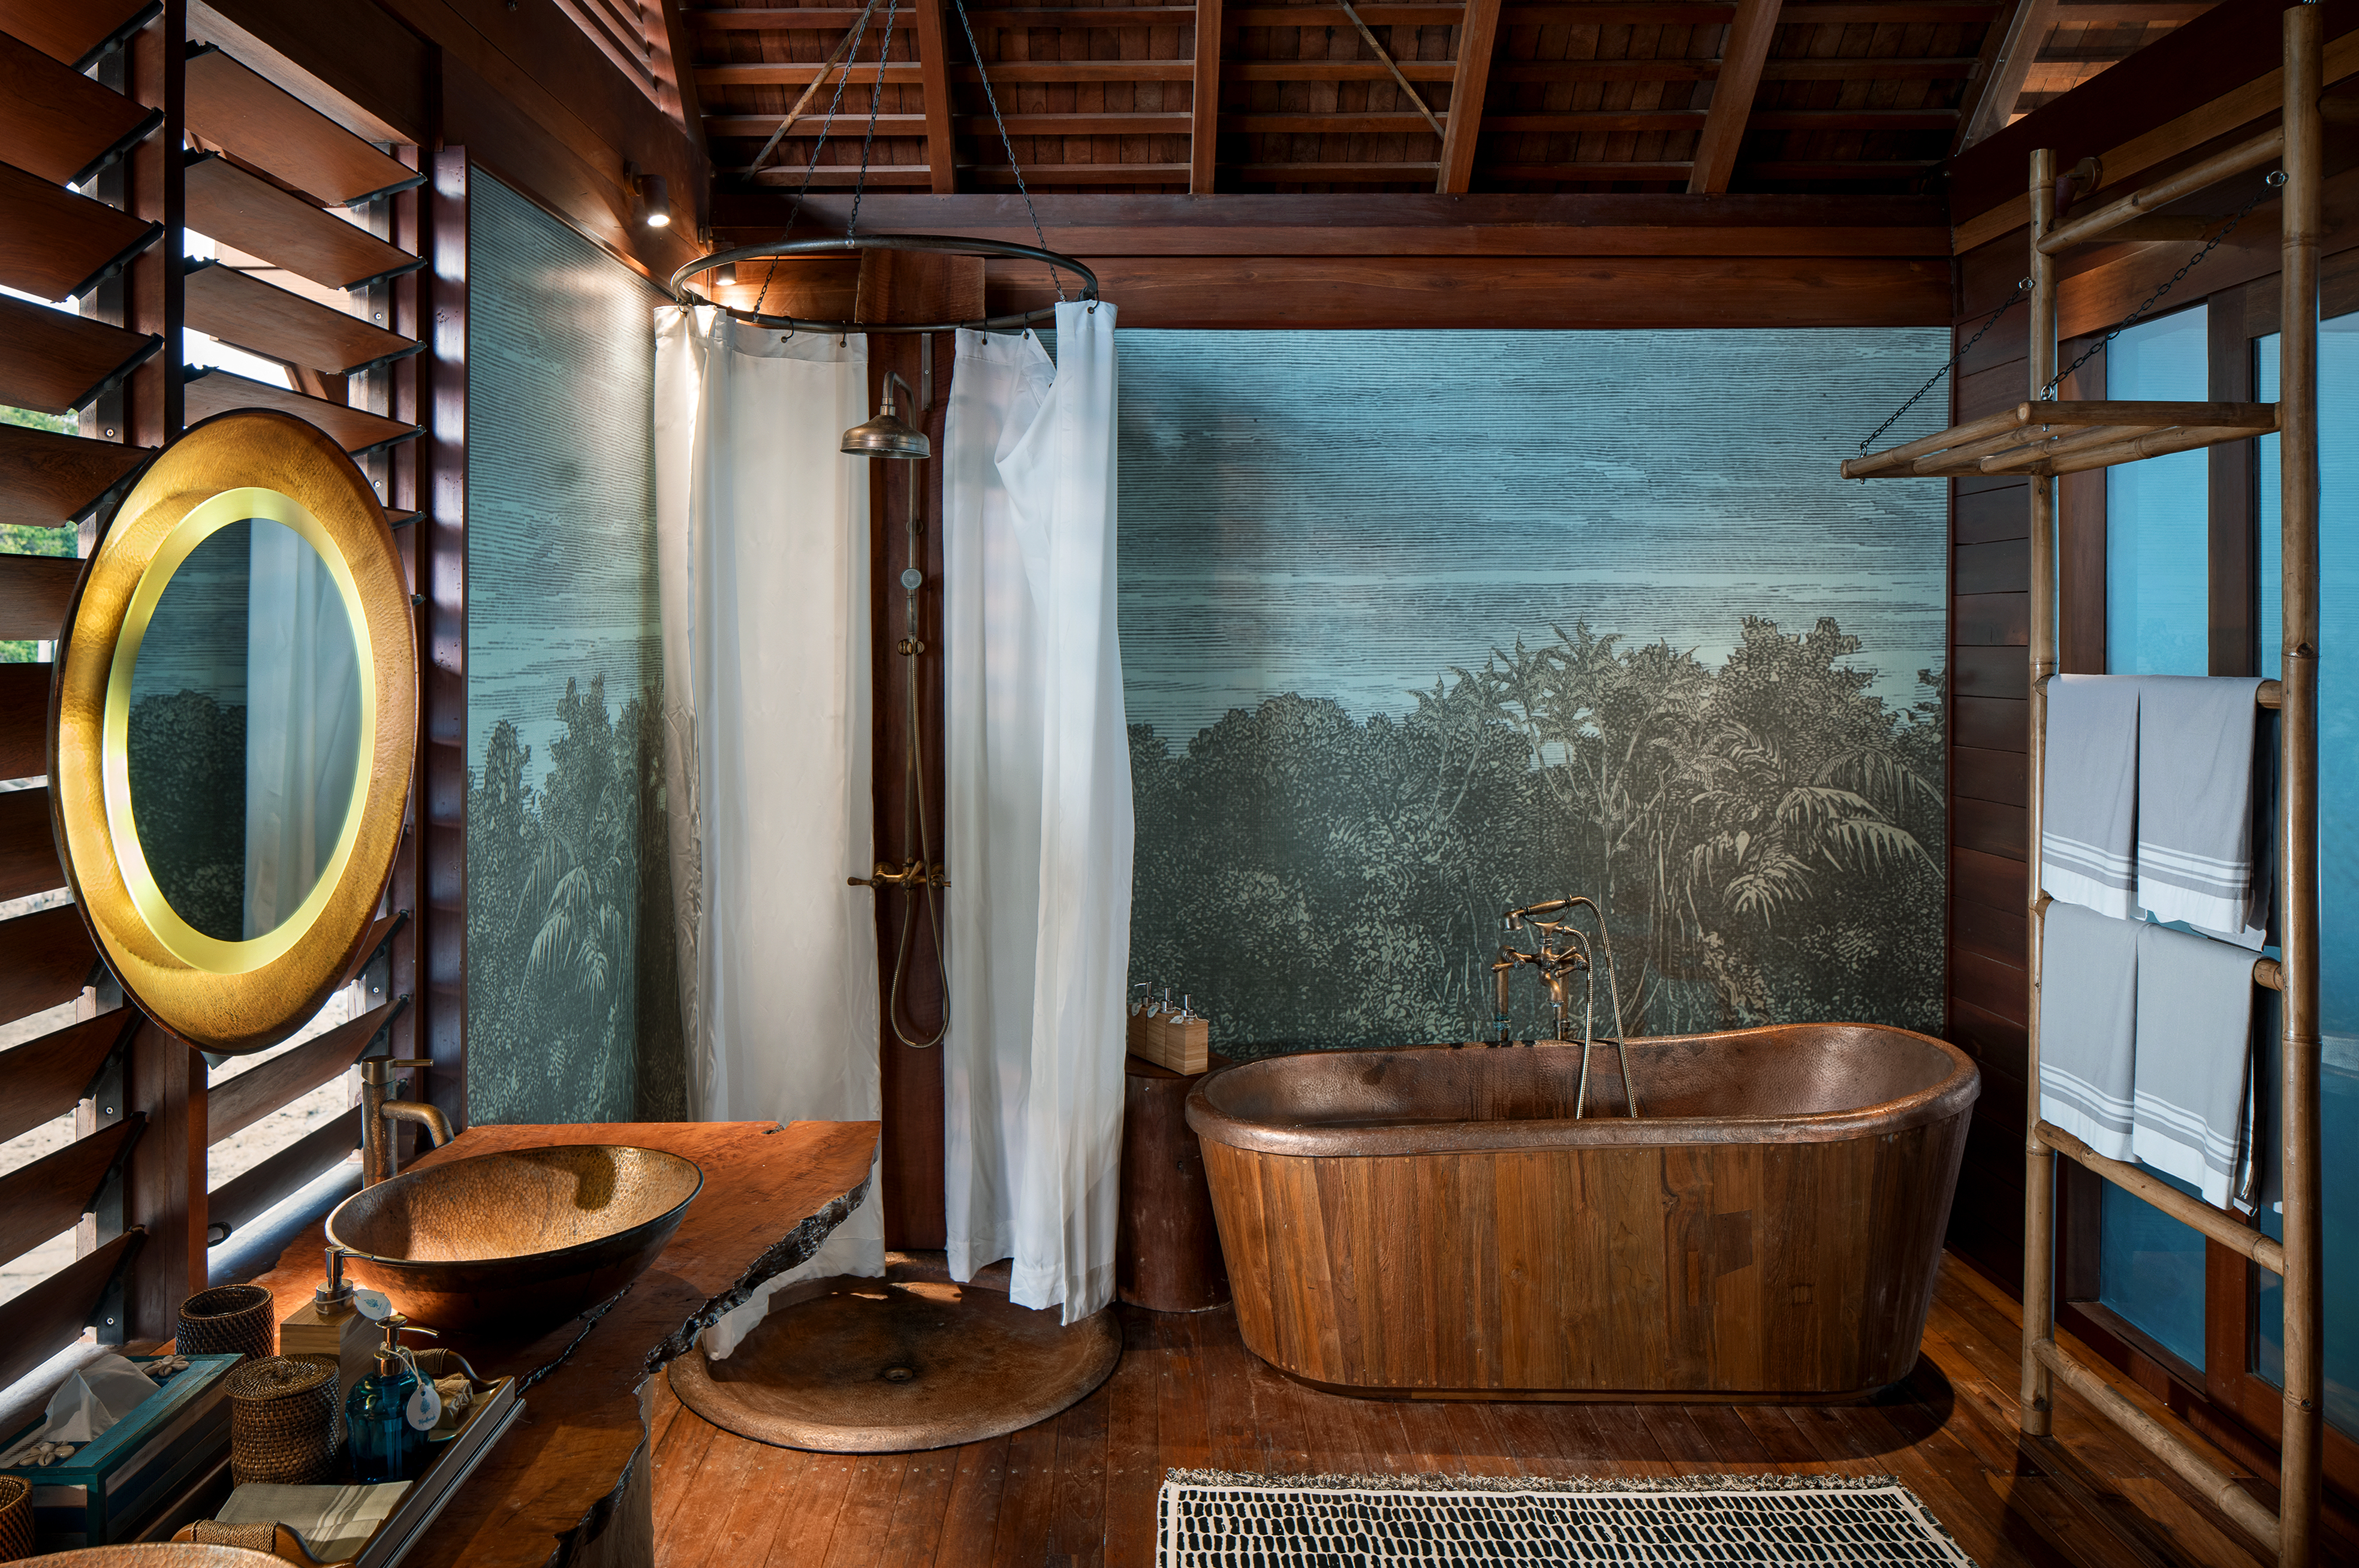 wall_painting_behind_copper_bath_tub_round_mirrors_overwater_suite_bathroom